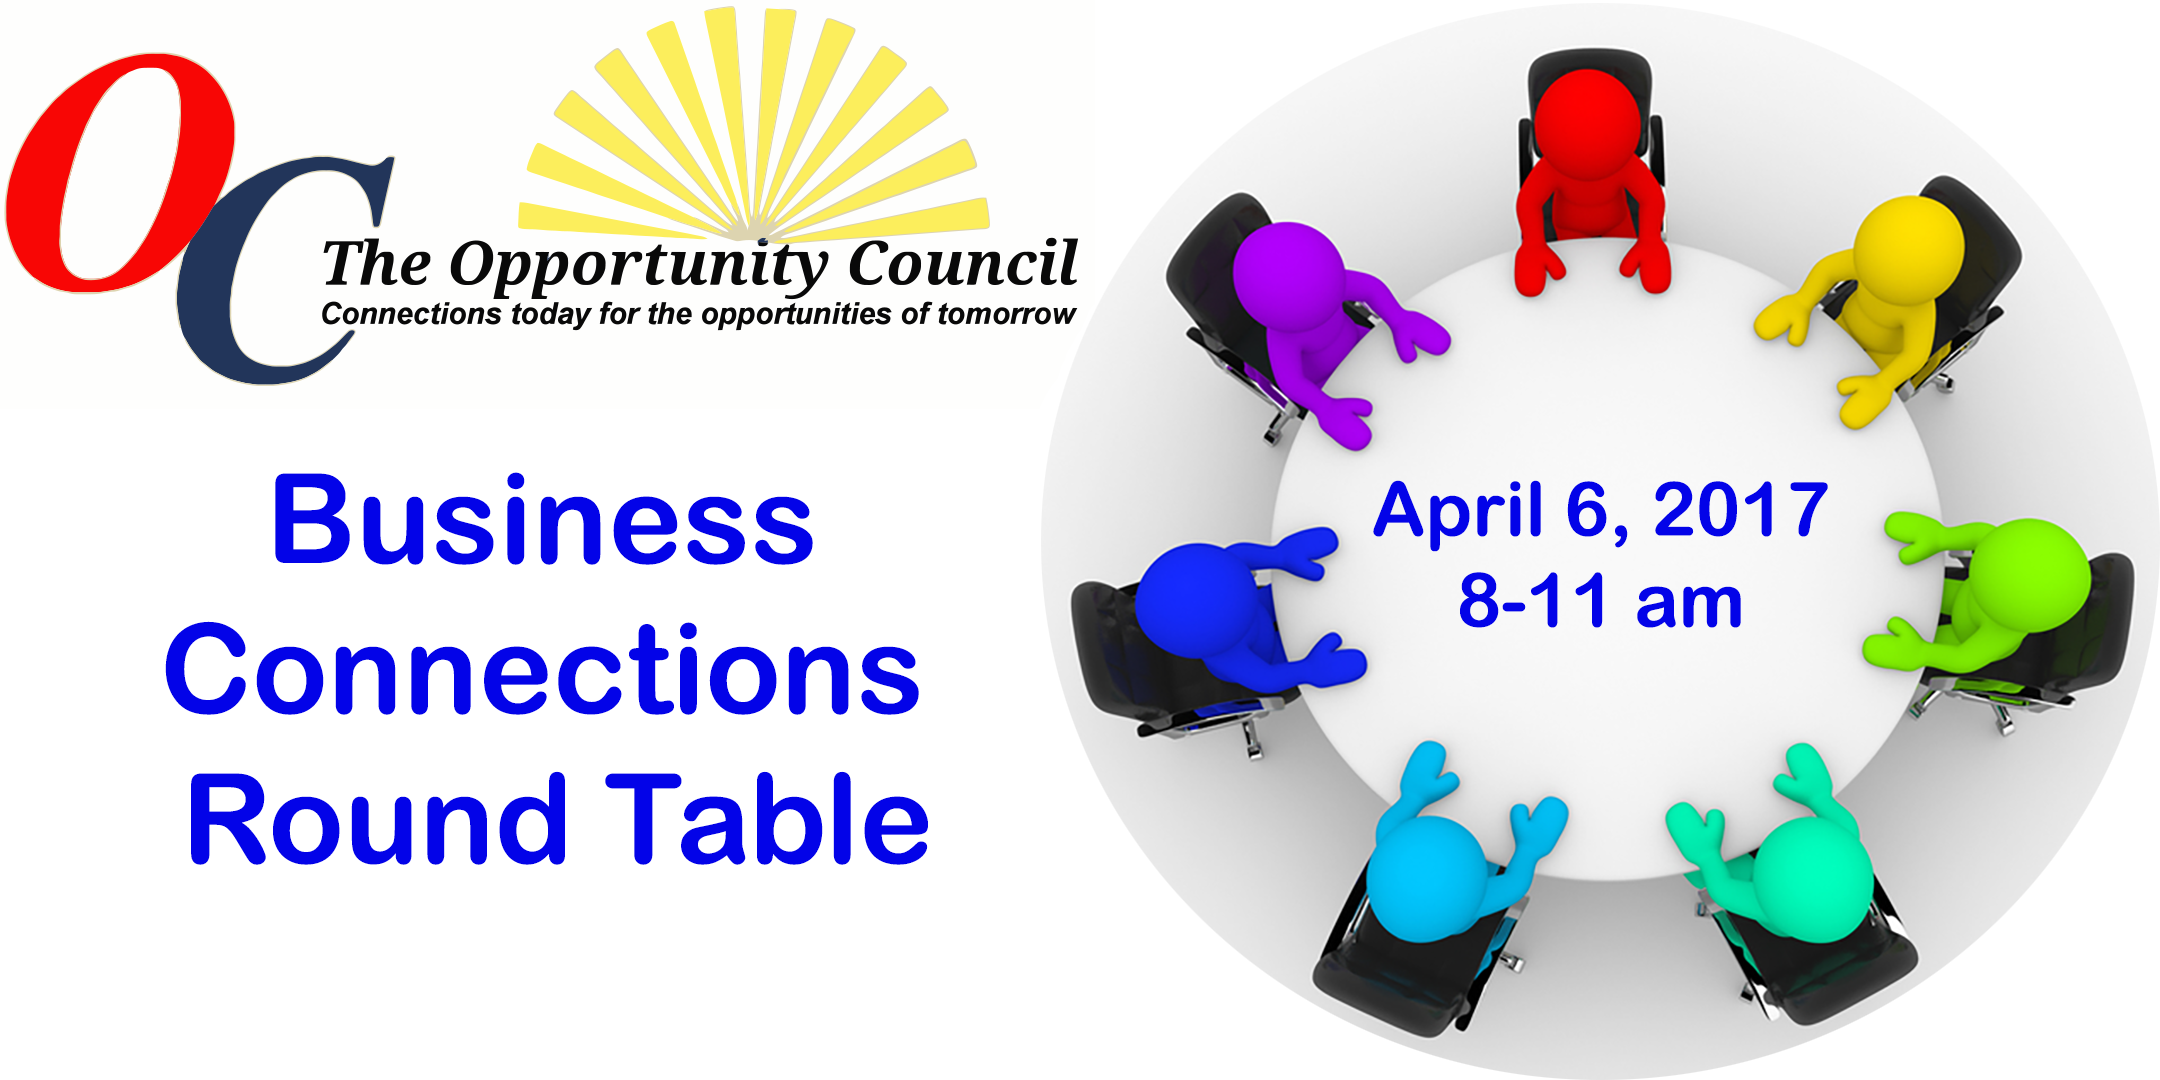 The Opportunity Councils Business Connections Round Table